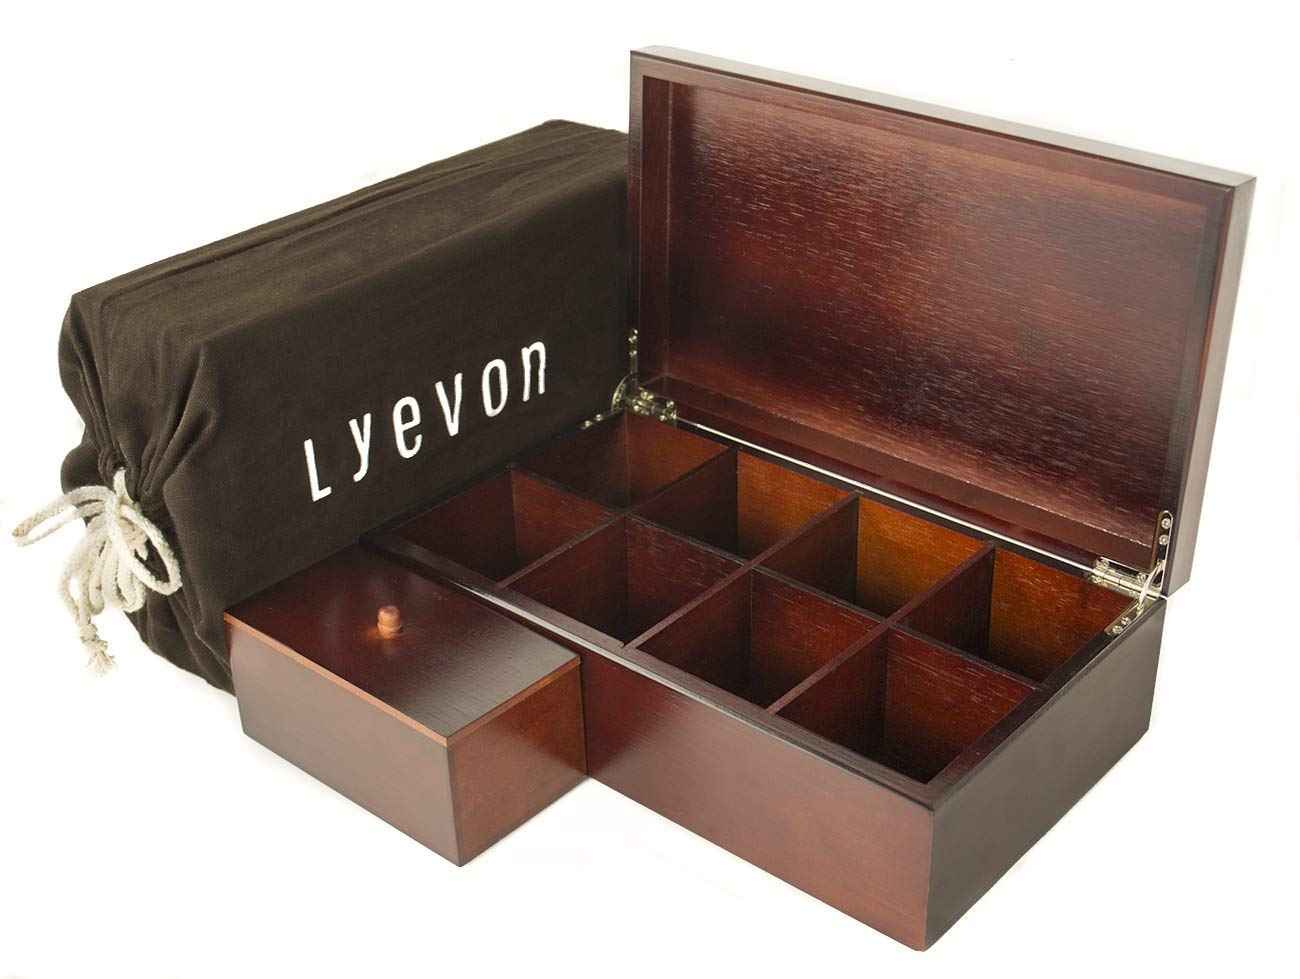 Tea Organizer - 8 Adjustable Compartments - Handmade Bamboo Tea Box Storage Organizer by Lyevon - Included container for loose leaf tea and coffee pods - Perfect Gift Idea - Dark Cherrywood